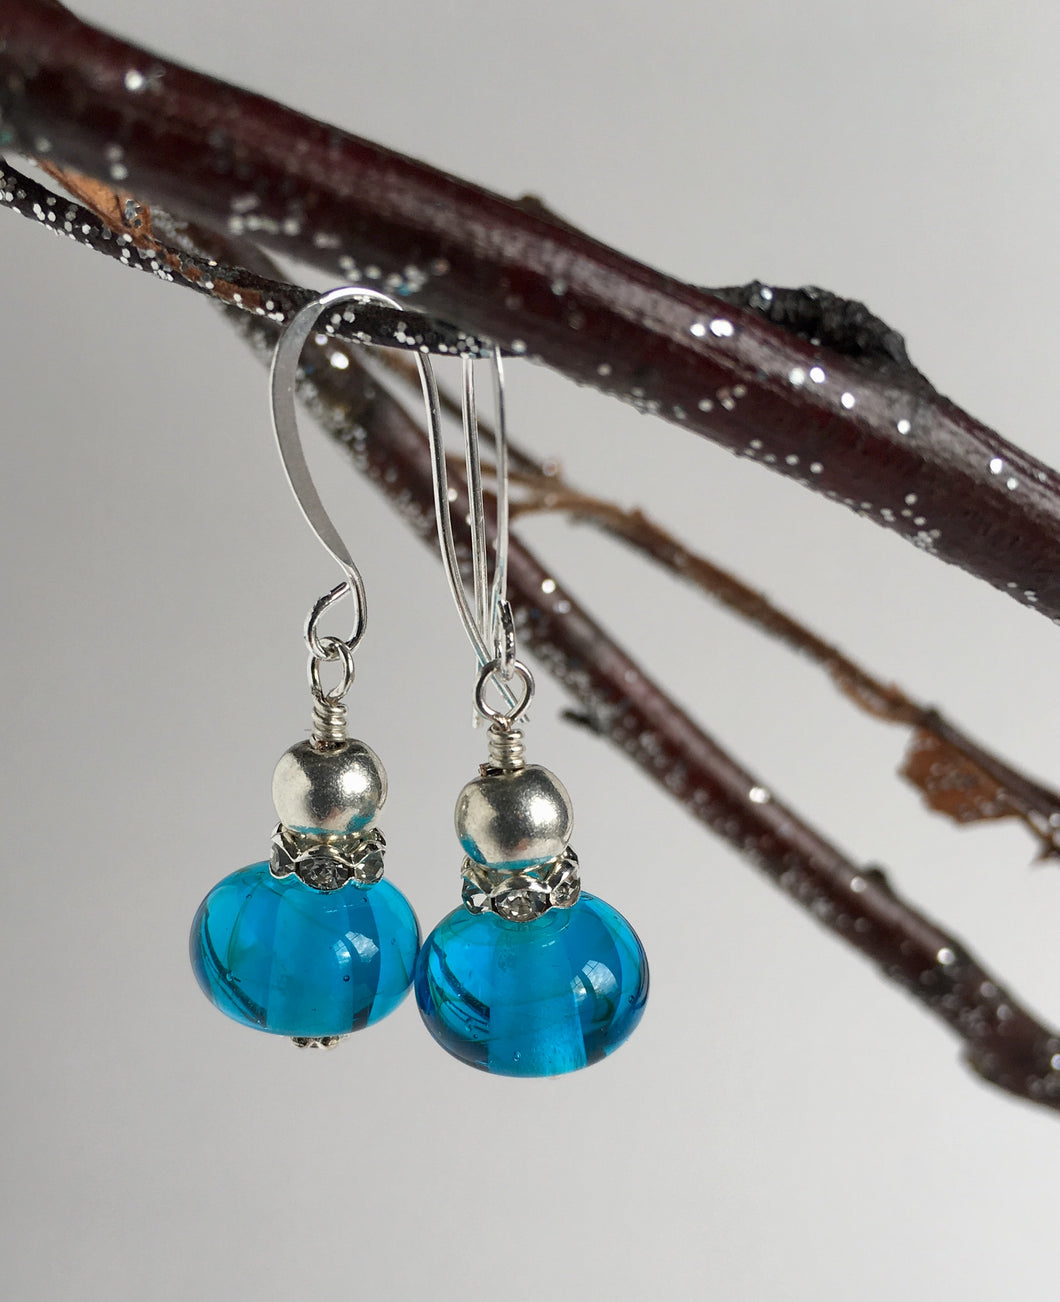 Lampworked glass earrings. Venetian glass earrings.